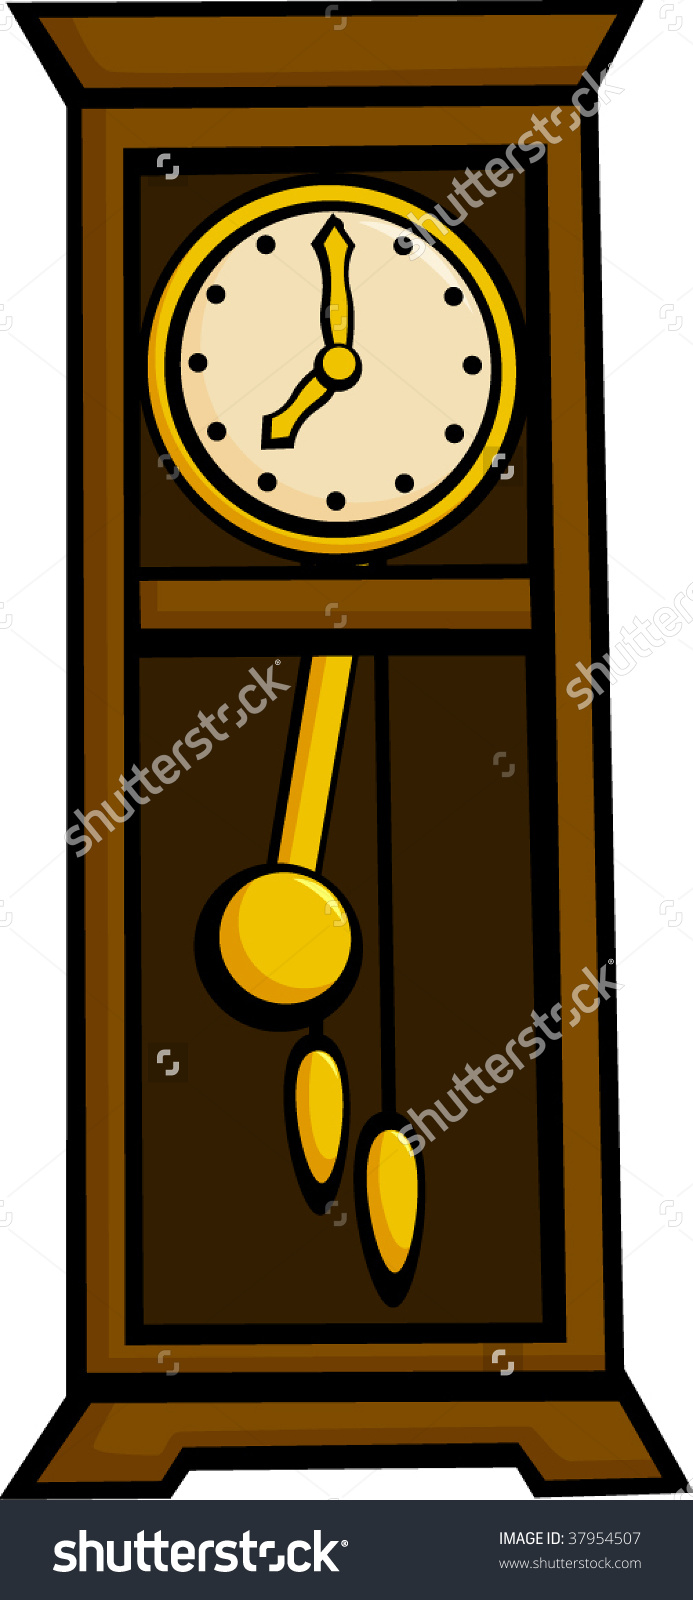 Wall clock with pendulum clipart image royalty free library Grandfather Pendulum Clock Stock Vector 37954507 - Shutterstock image royalty free library